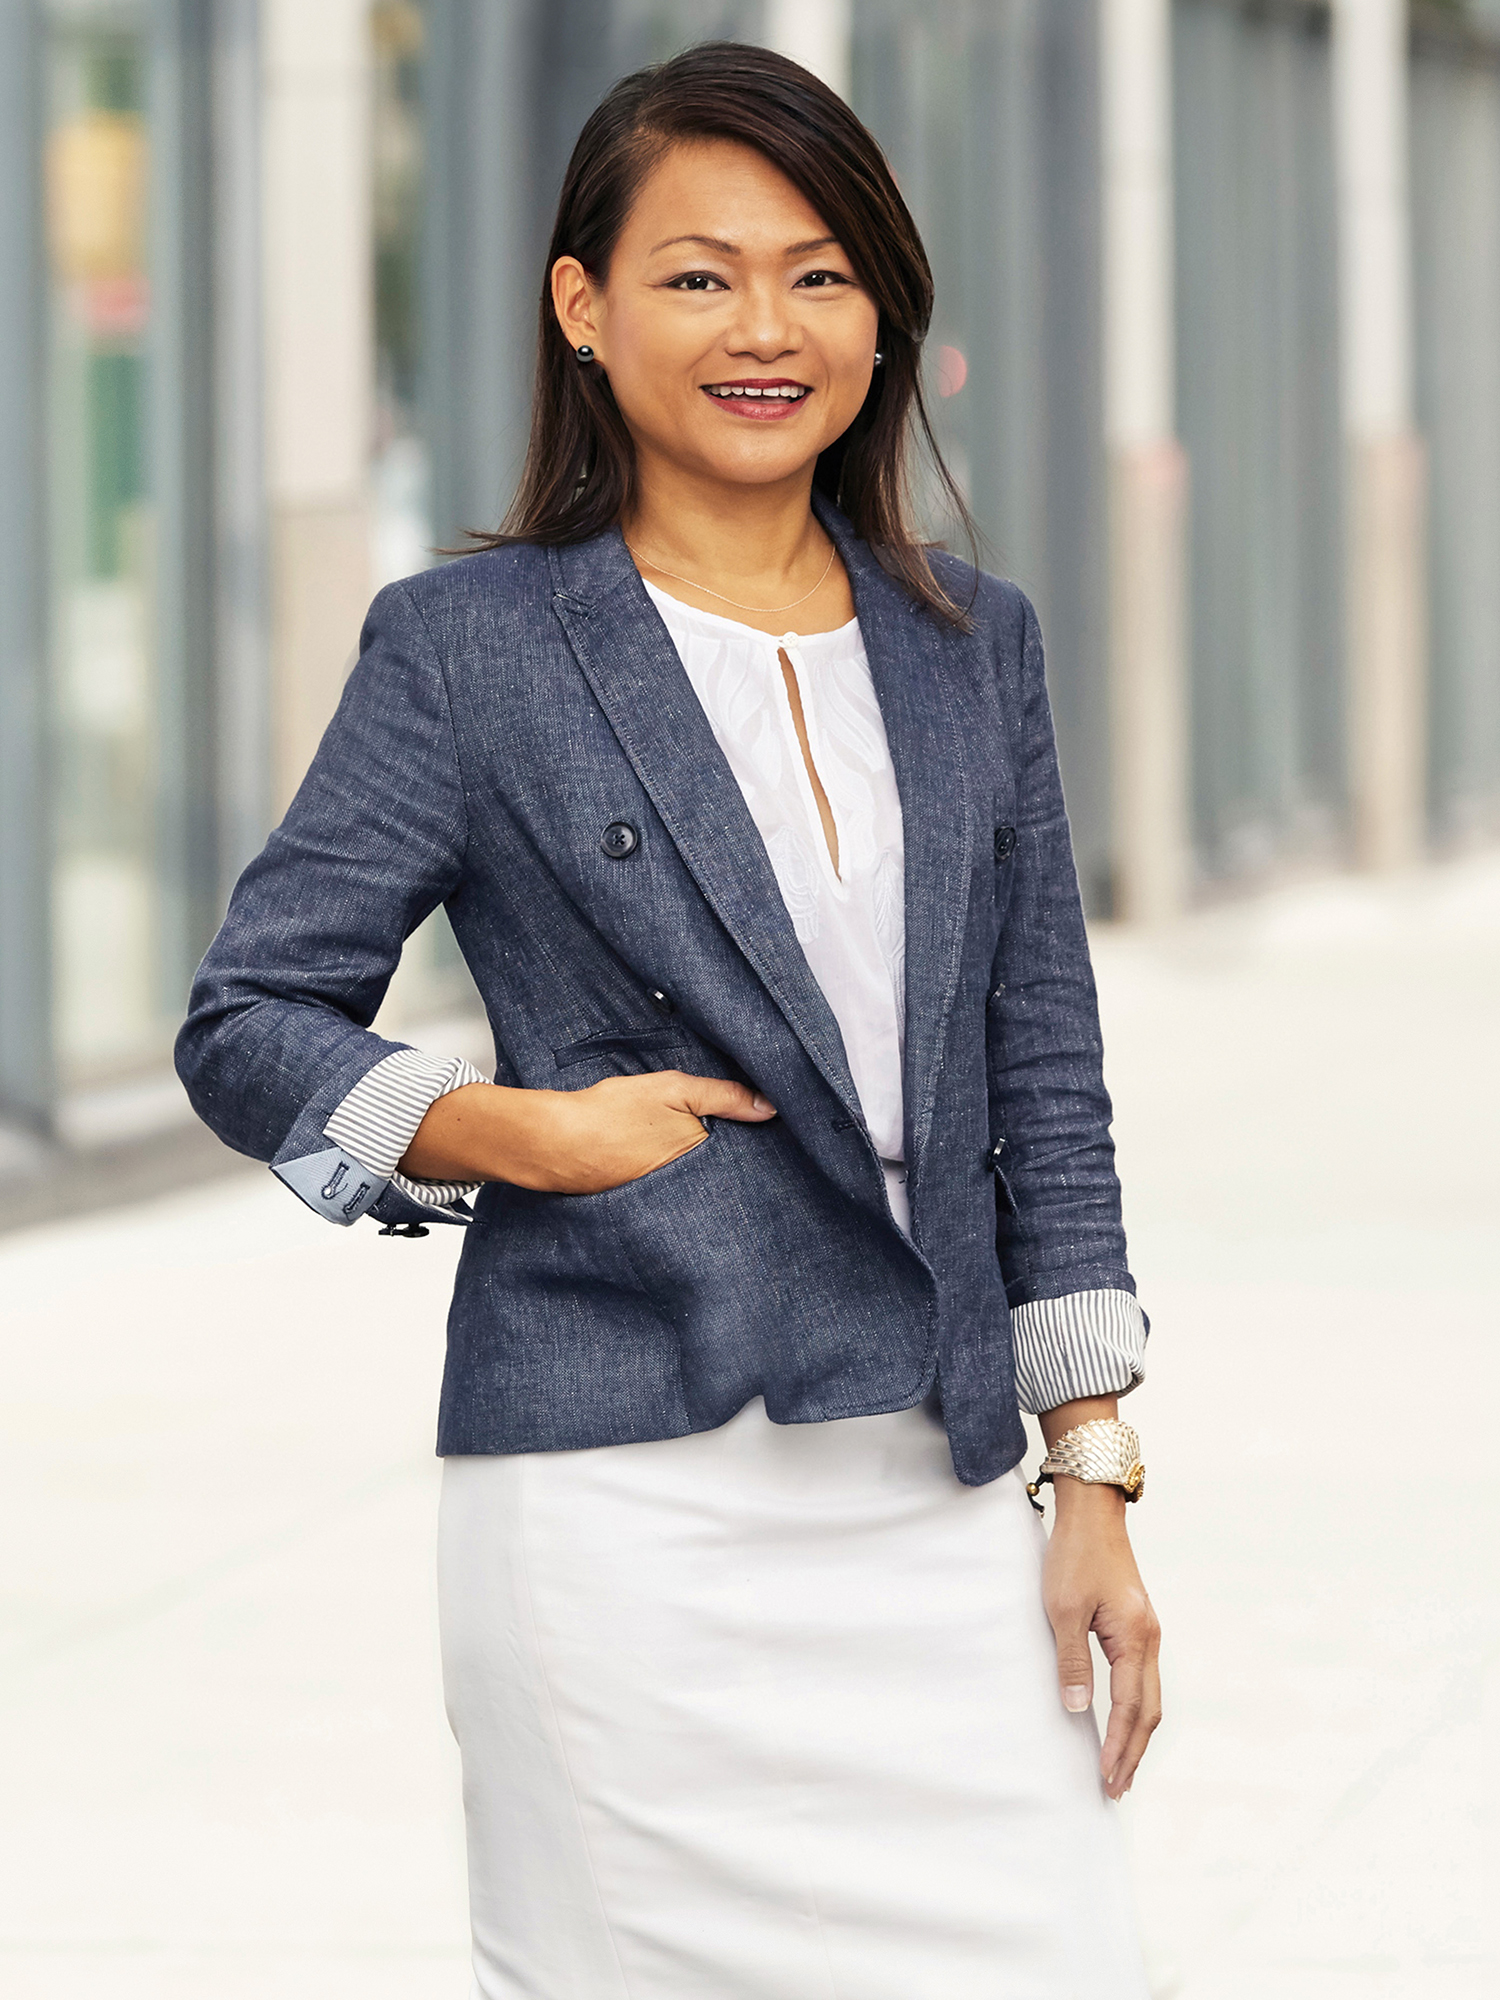 Jennie Ma, a top realtor in New York City for Corcoran, a real estate firm in Chelsea/Flatiron.